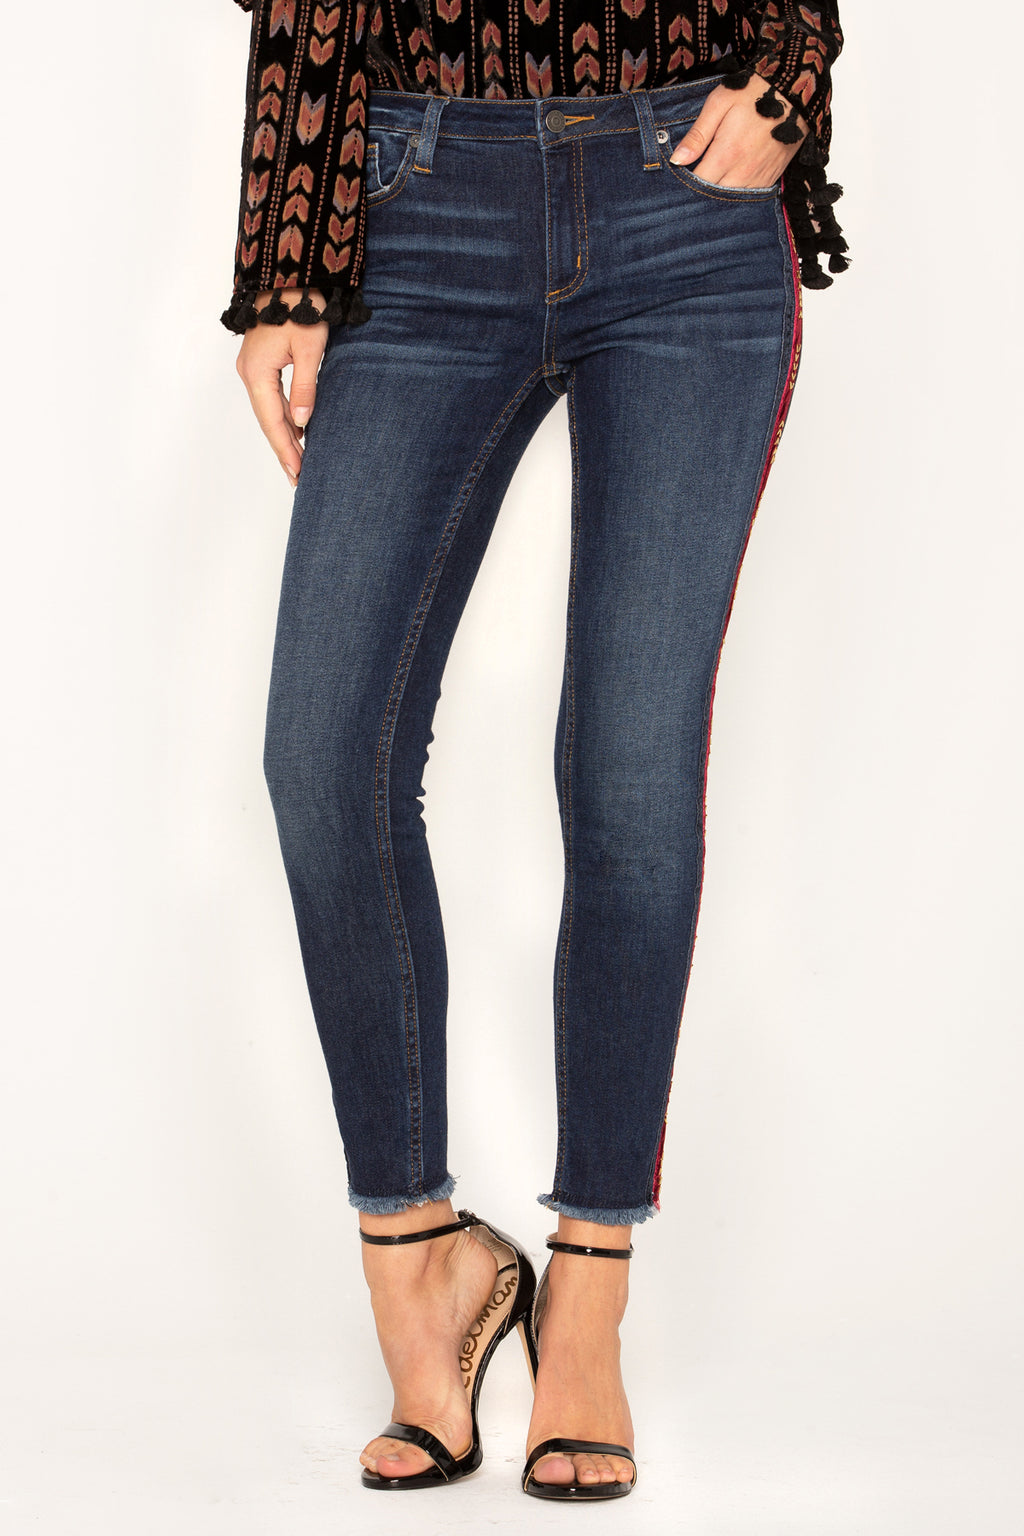 d93f48fc63bb8 LINED UP ANKLE SKINNY JEANS